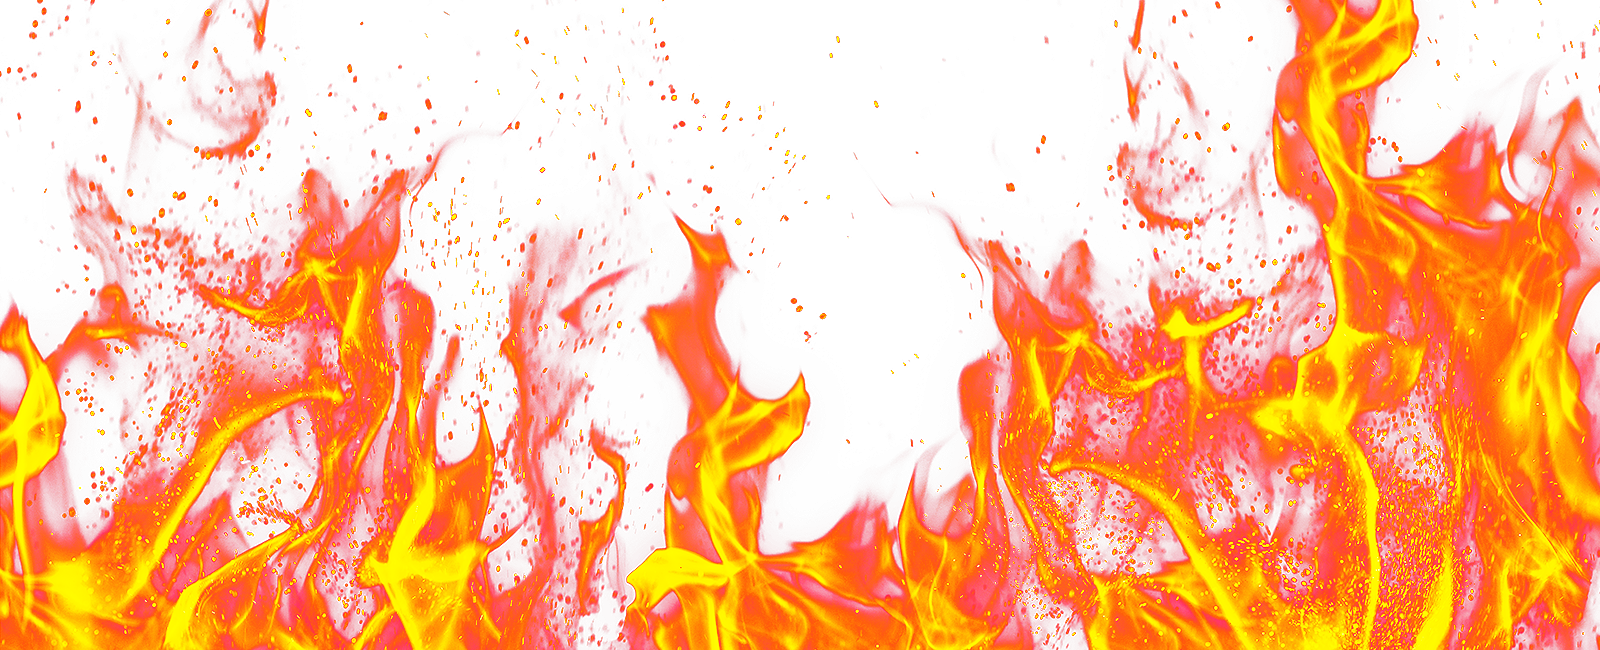 Hot Flame Fire Ground PNG Image